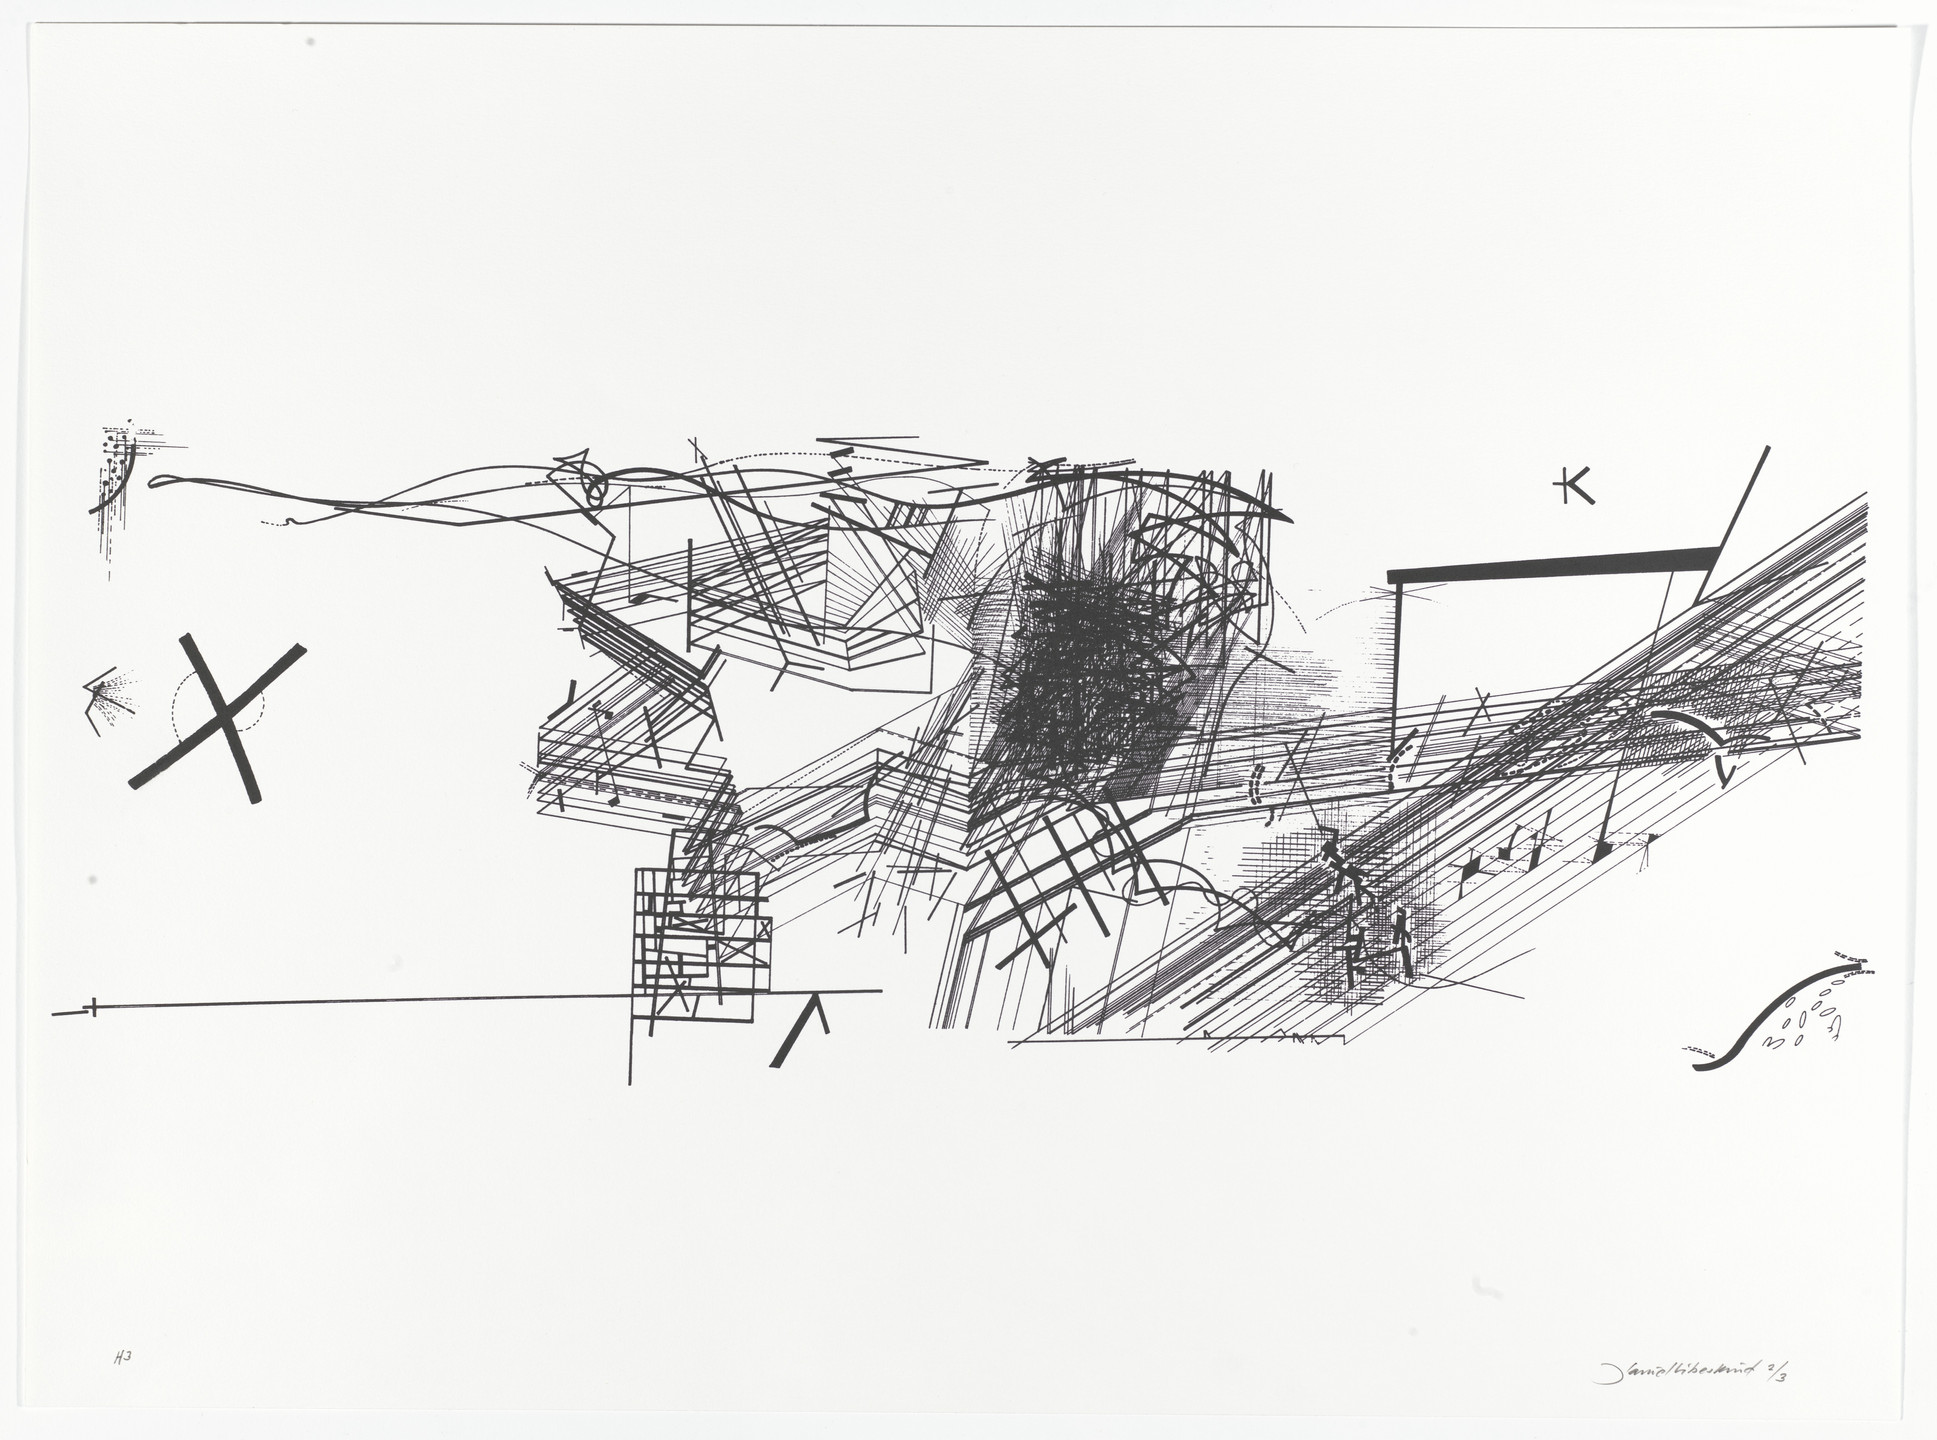 Daniel Libeskind. Chamber Works: Architectural Meditations on Themes from Heraclitus. 1983